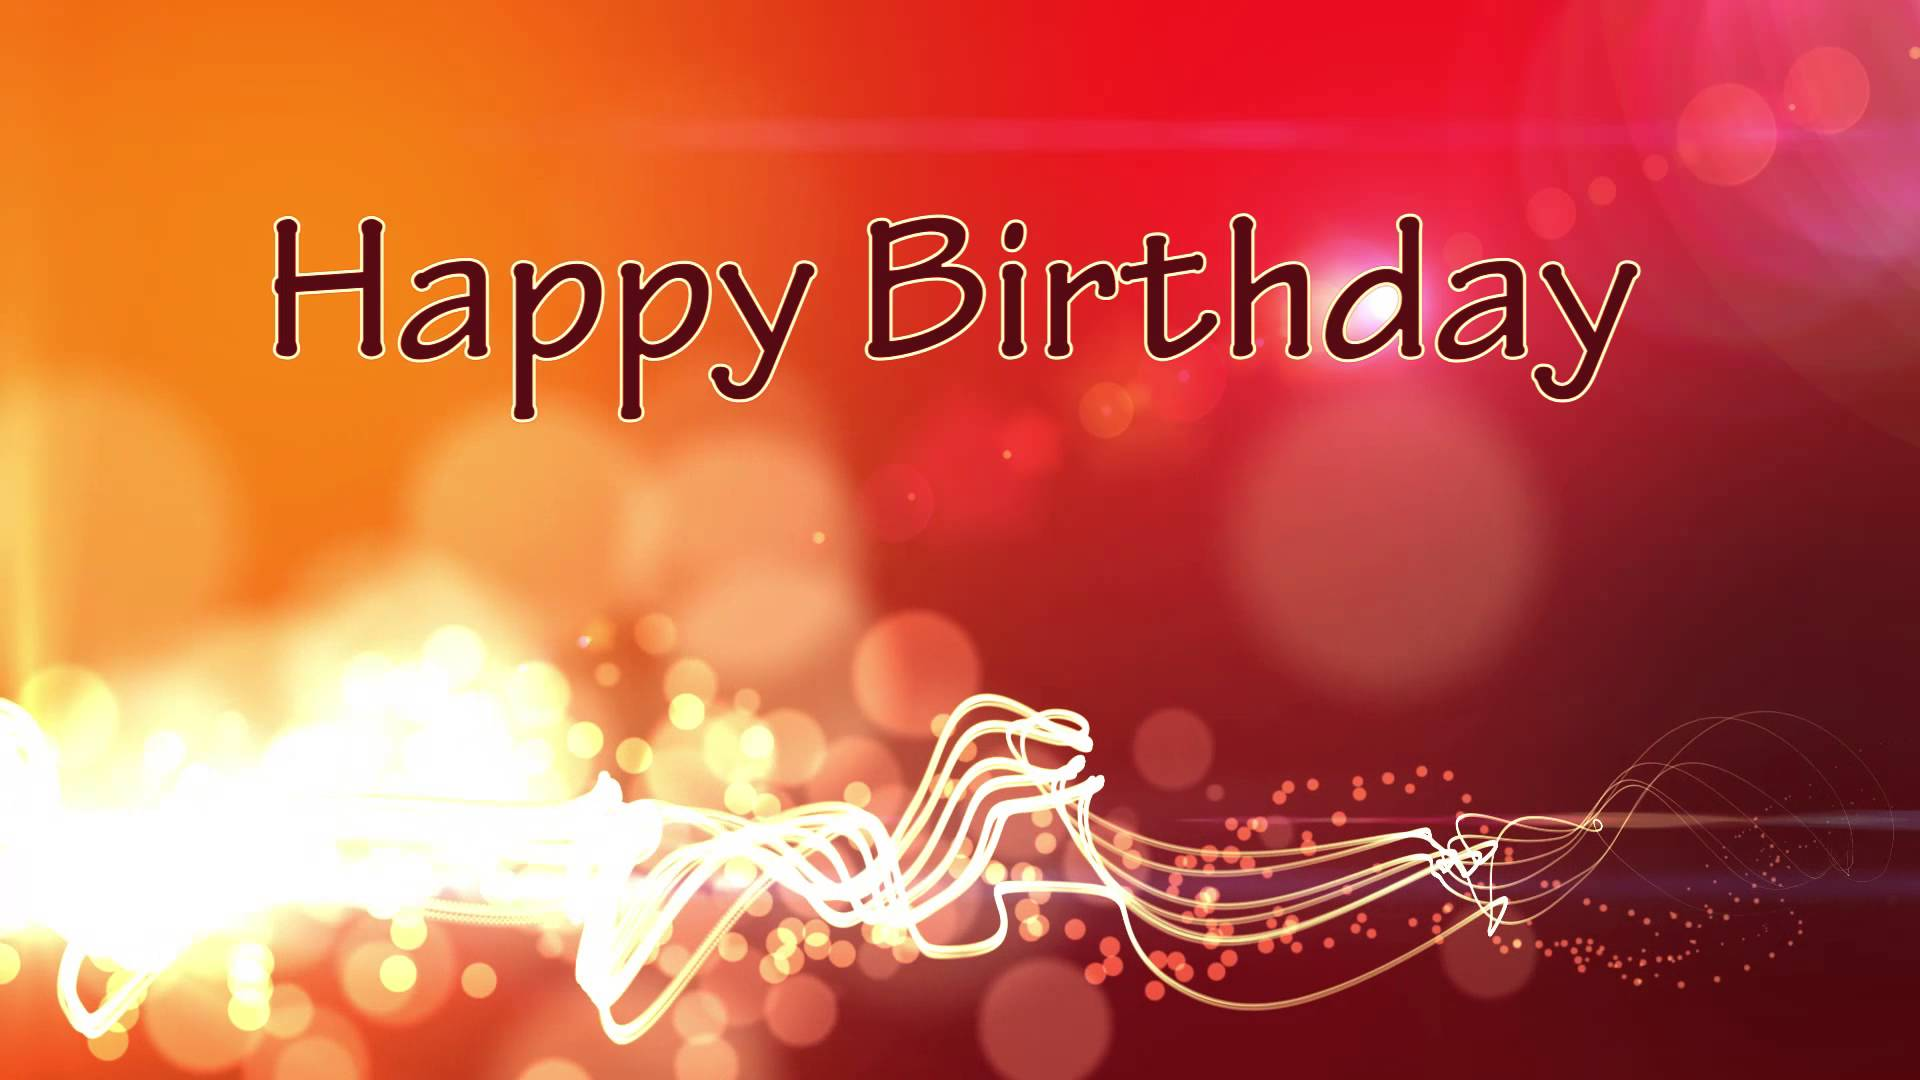 download happy birthday images hd ; Happy-birthday-wallpaper-HD-free-download